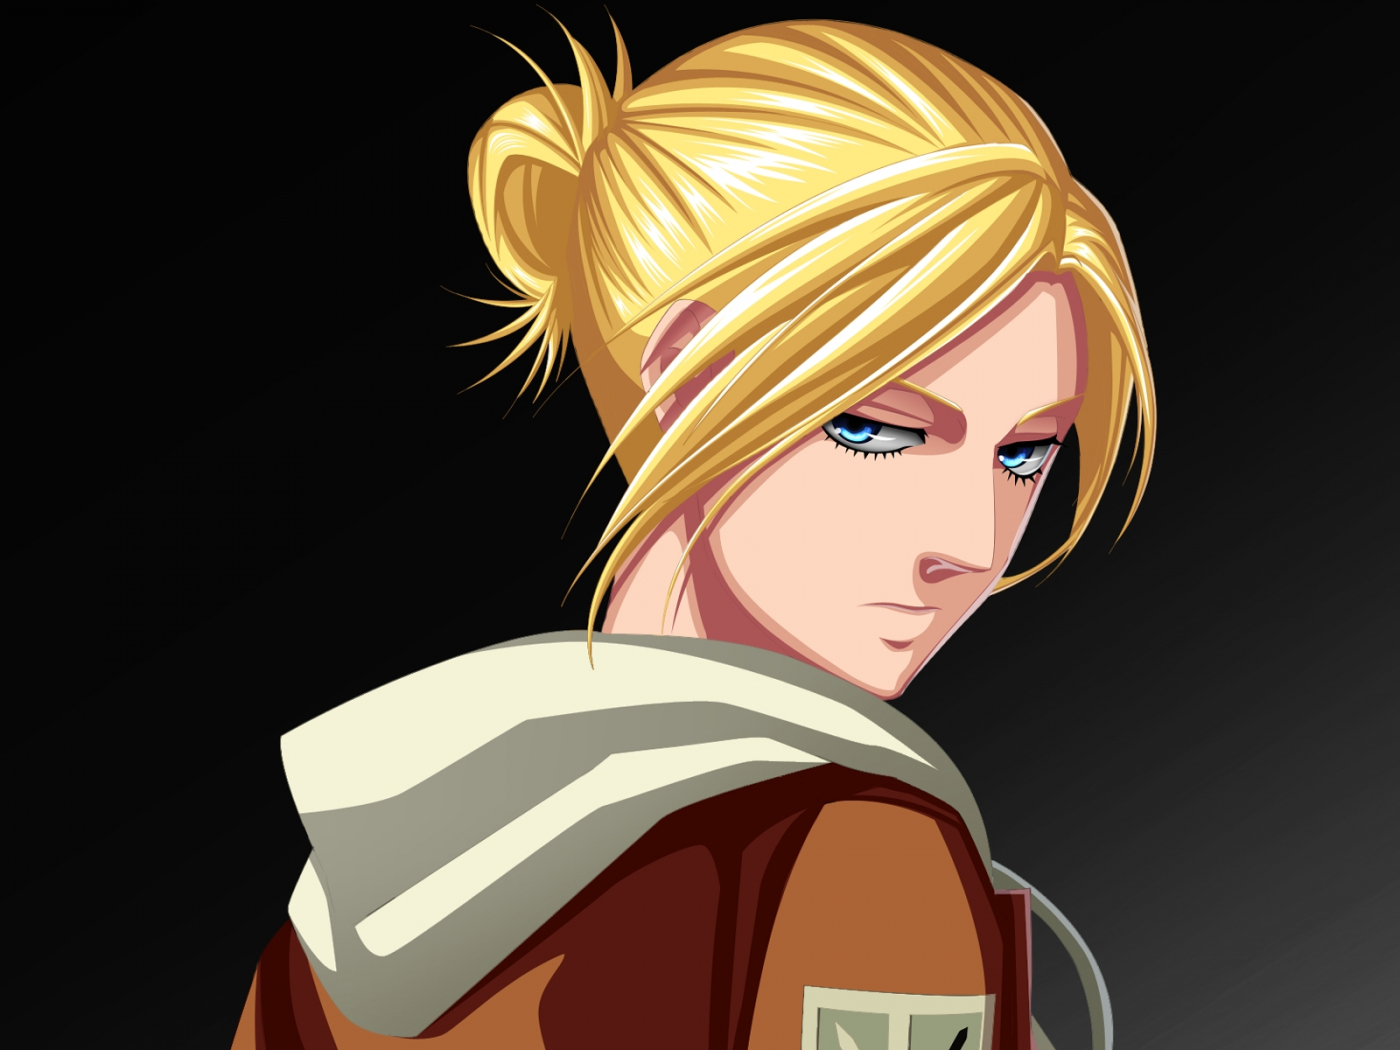 Desktop Wallpaper Blonde Anime Annie Leonhart Attack On Titans Anime Girl Hd Image Picture Background Act Cf